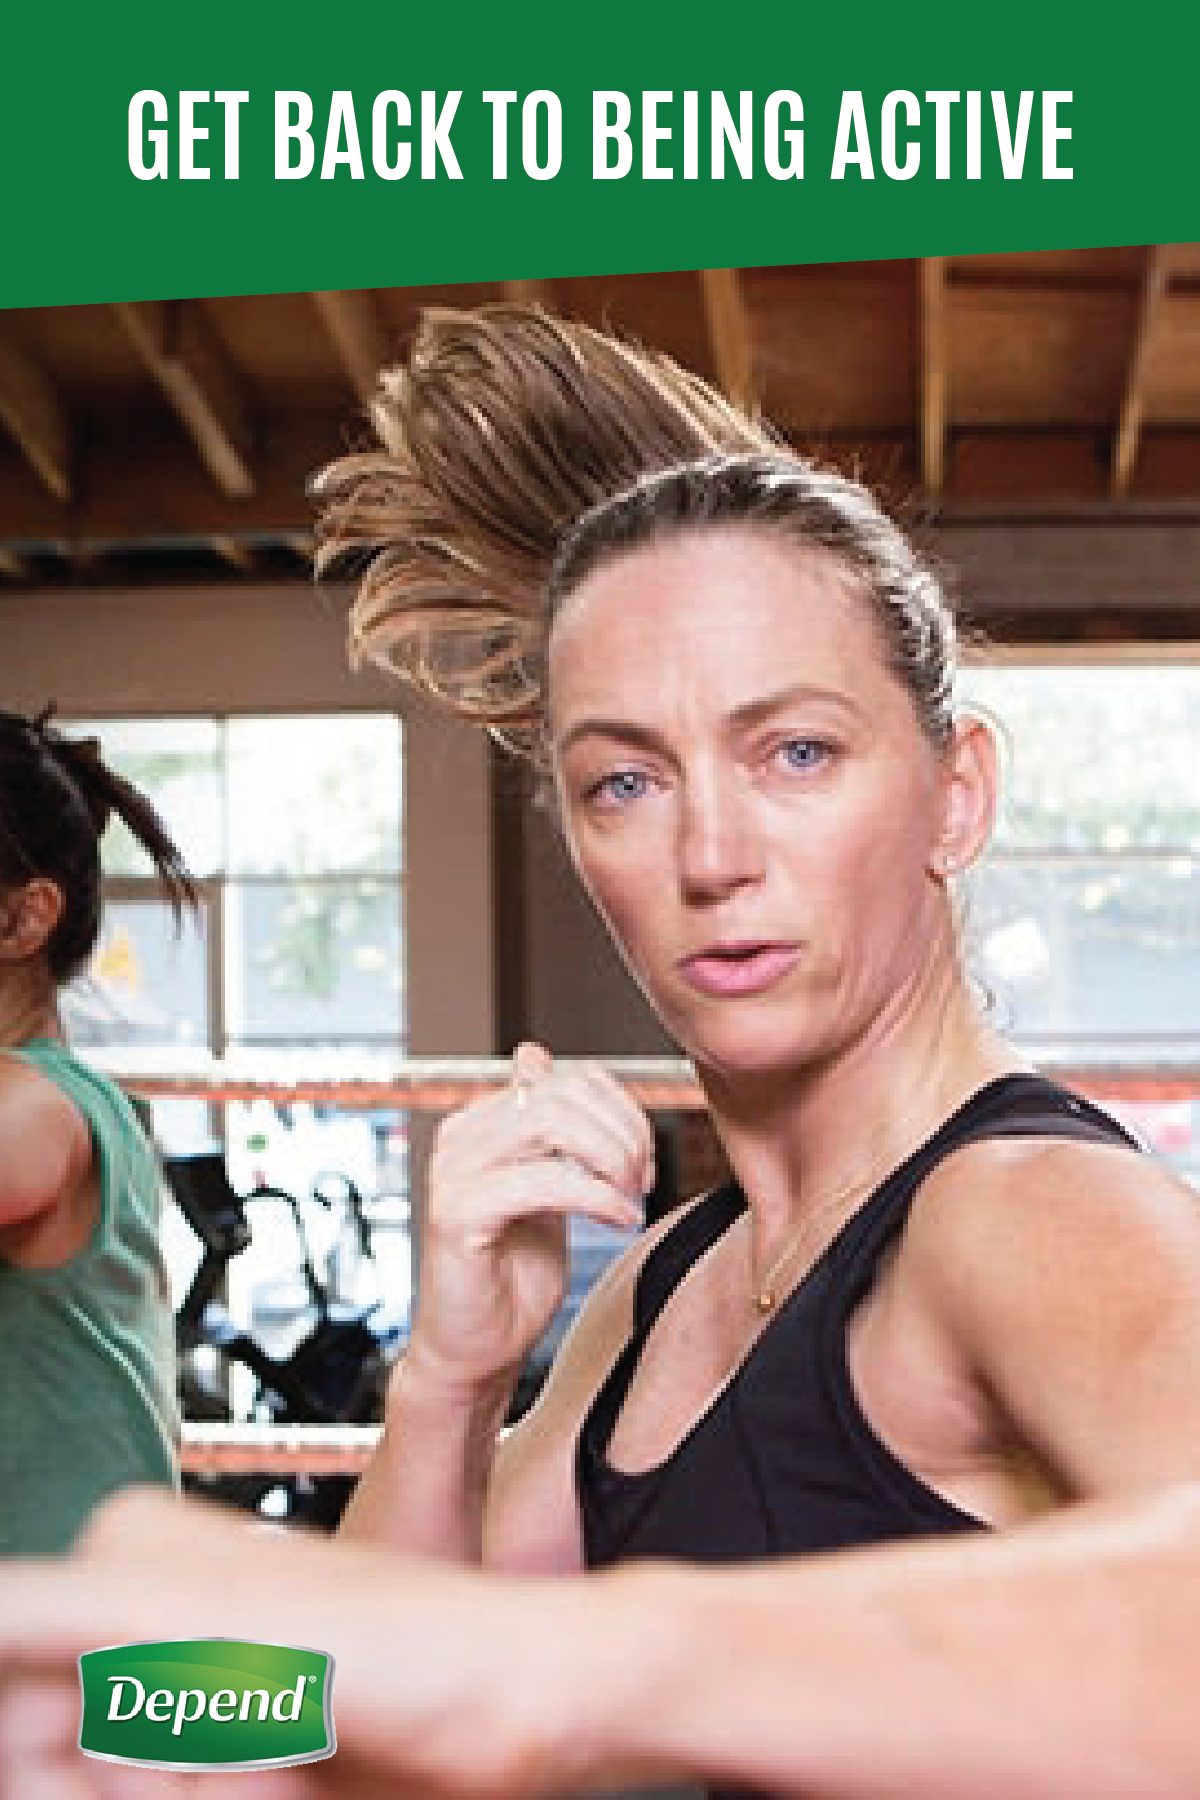 Is incontinence holding you back from doing the things you love? Depend® is giving people everywhere the confidence to reconnect with the lives and people they've been missing. See how you can get back to doing your favorite workouts, from boxing to yoga.